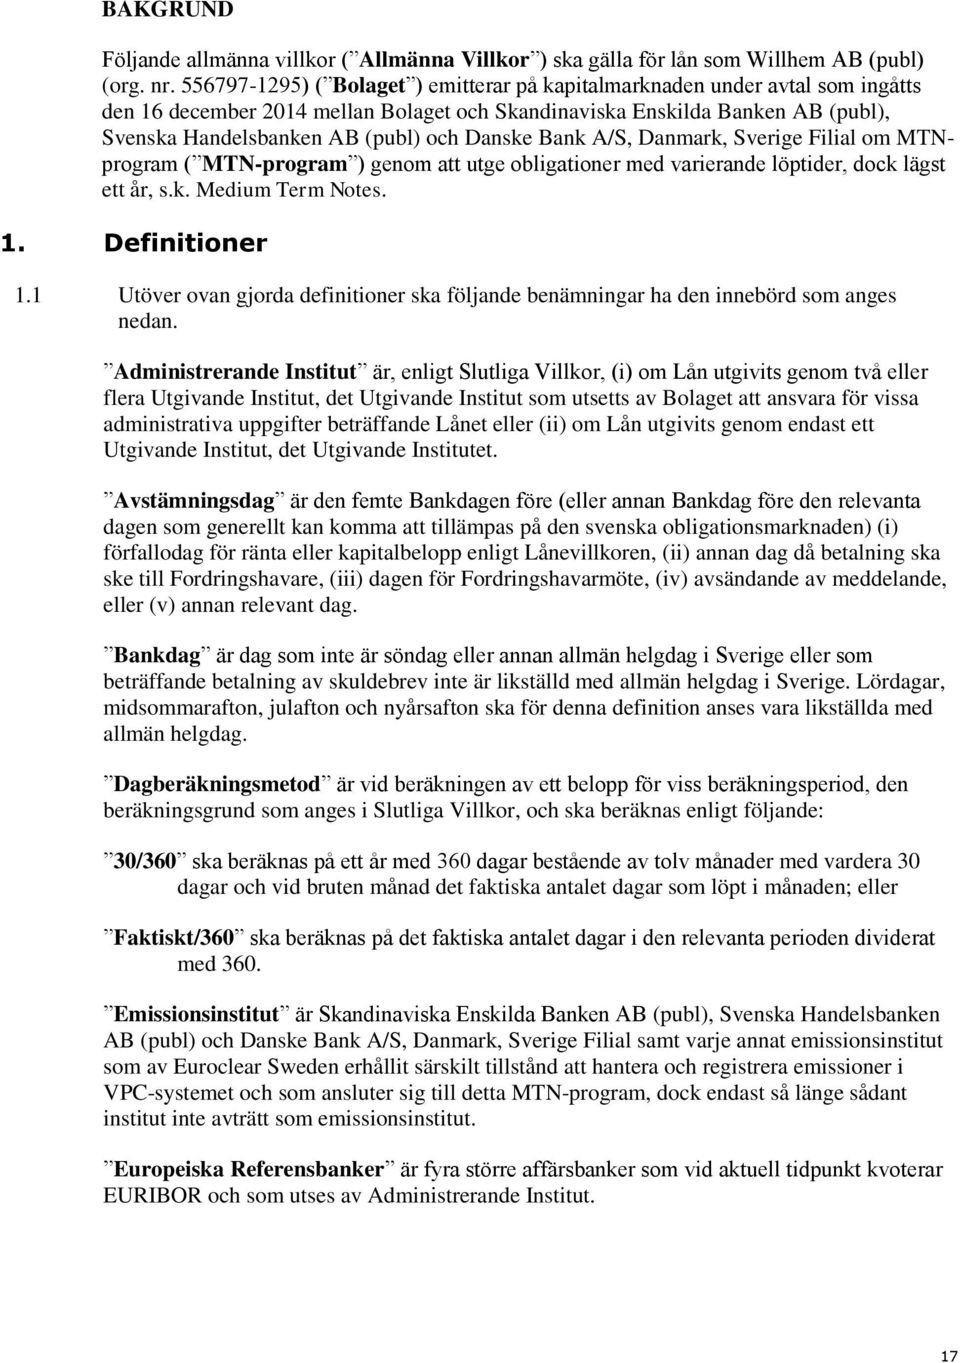 Danske Bank A/S, Danmark, Sverige Filial om MTNprogram ( MTN-program ) genom att utge obligationer med varierande löptider, dock lägst ett år, s.k. Medium Term Notes. 1. Definitioner 1.